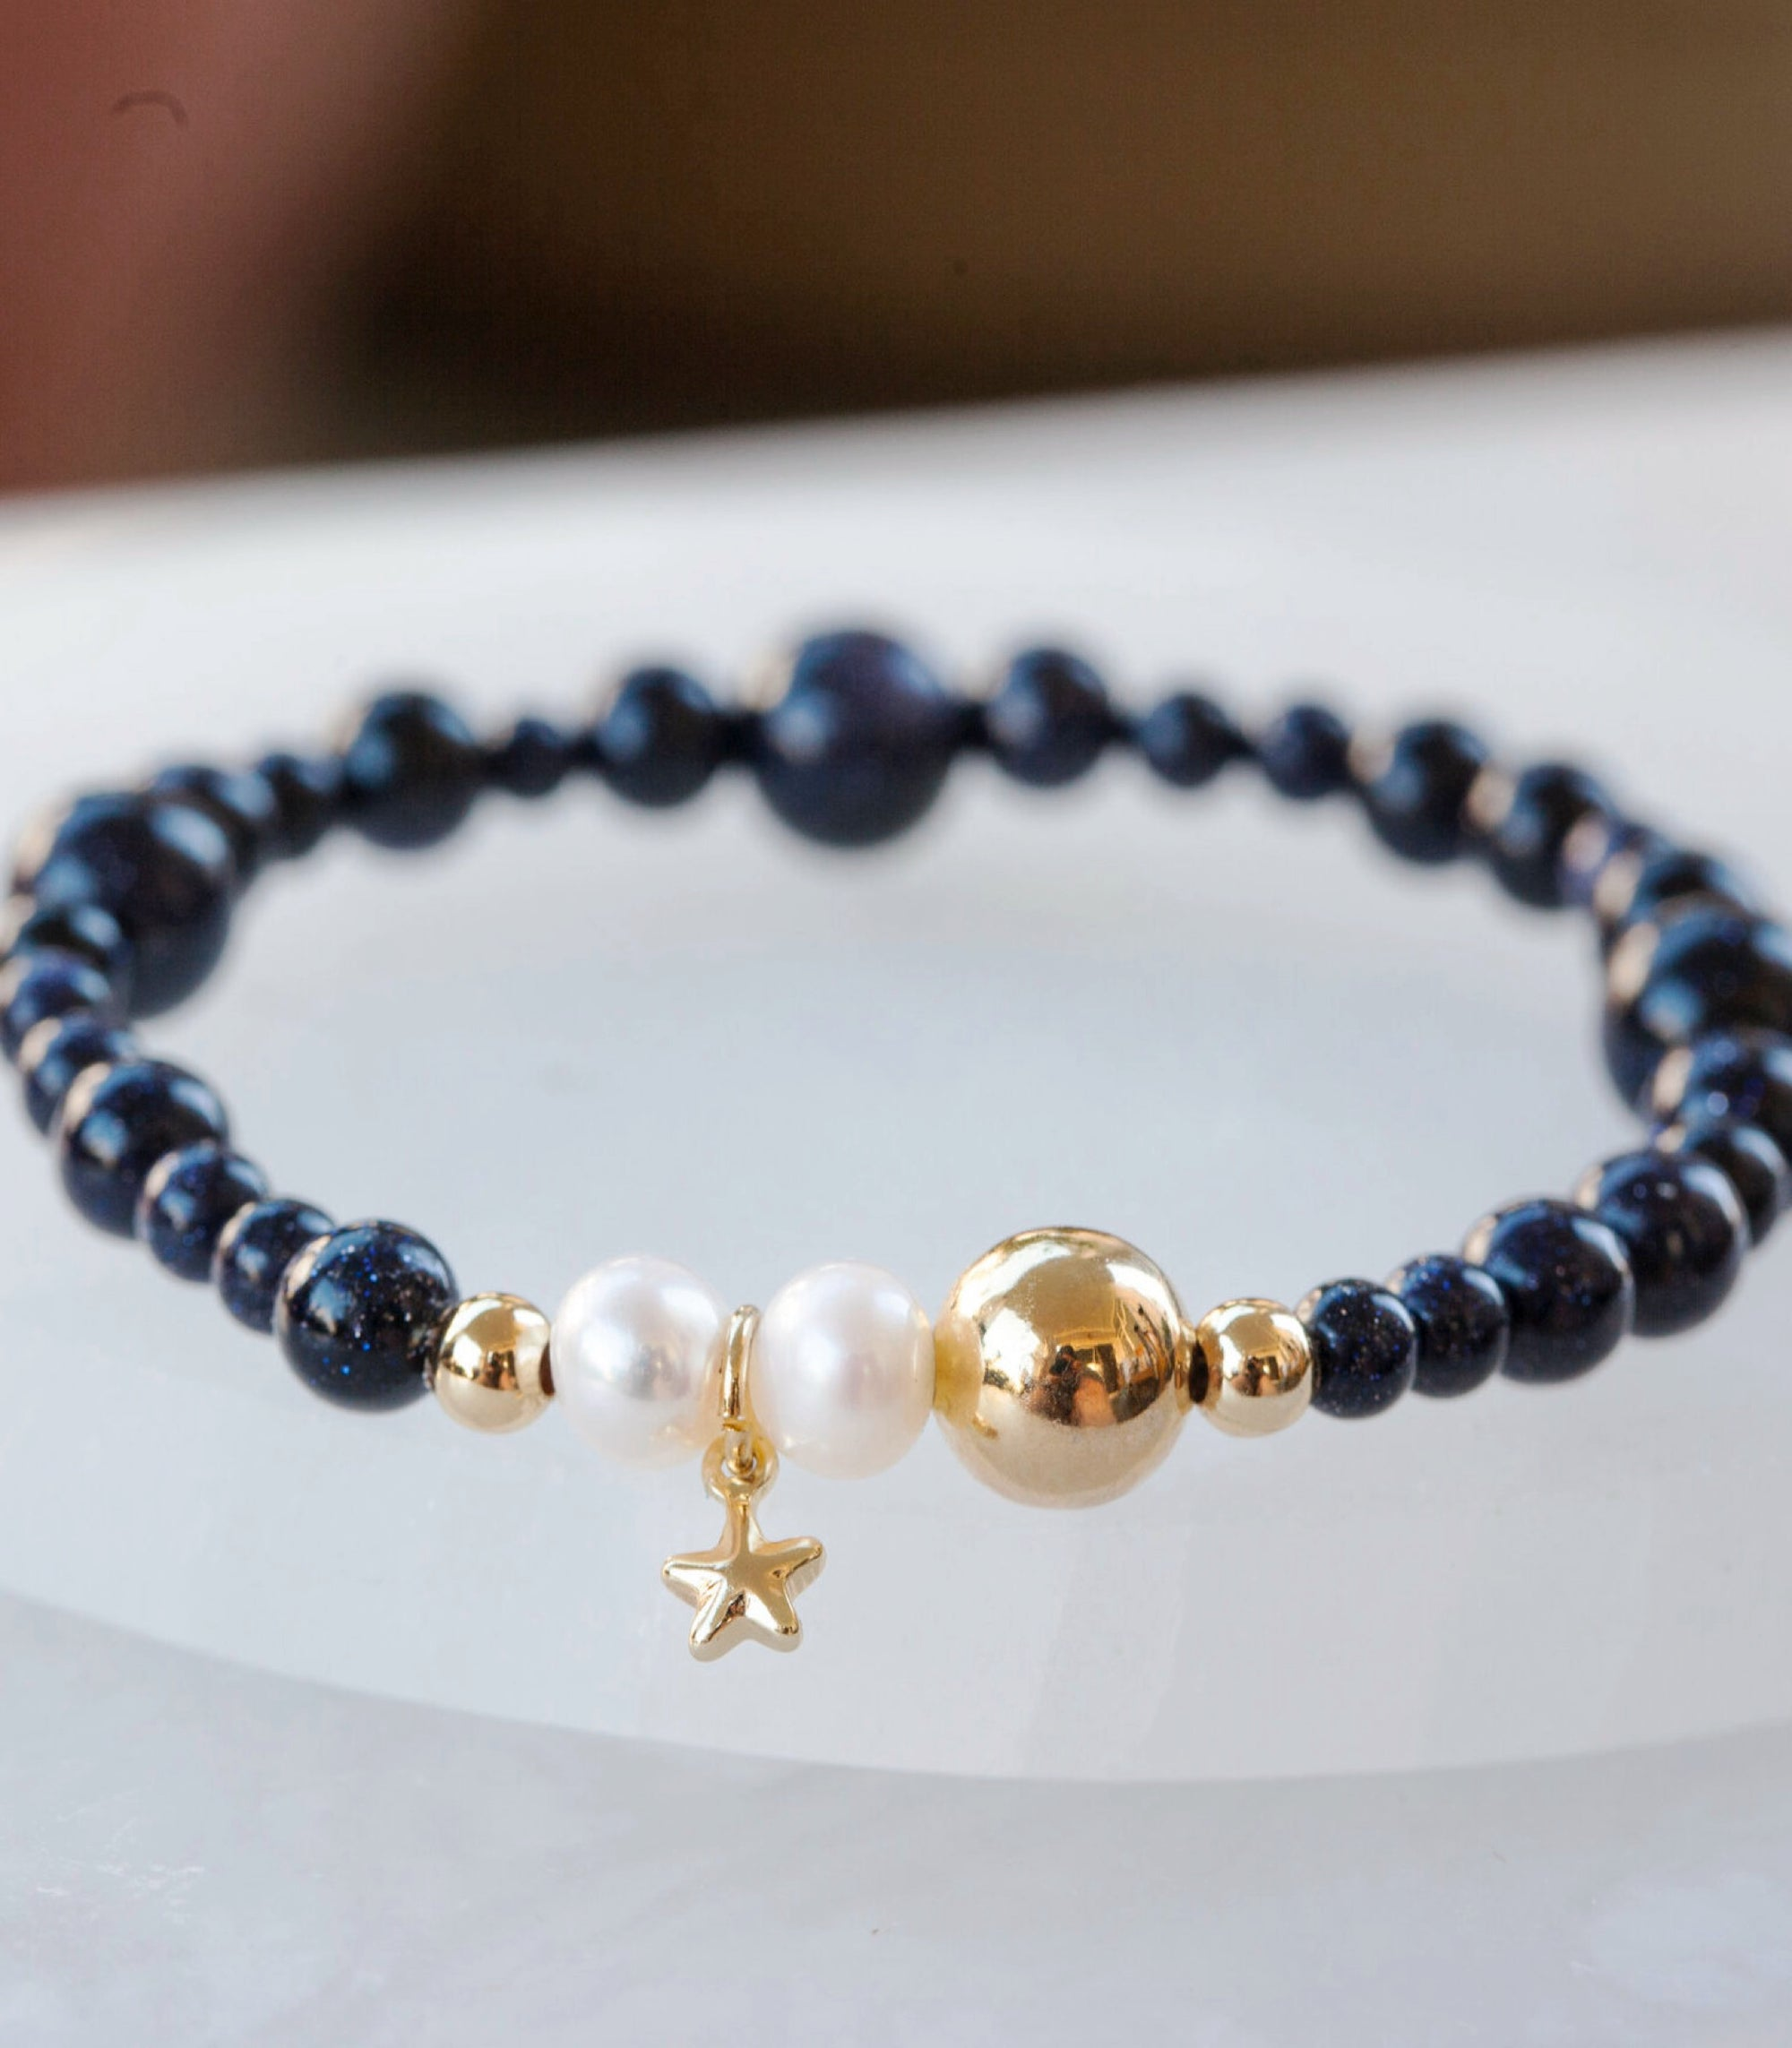 Calm Chakra Reach for the Stars Bracelet - Blue Sandstone, Pearl, & Star Charm REACH-AW2